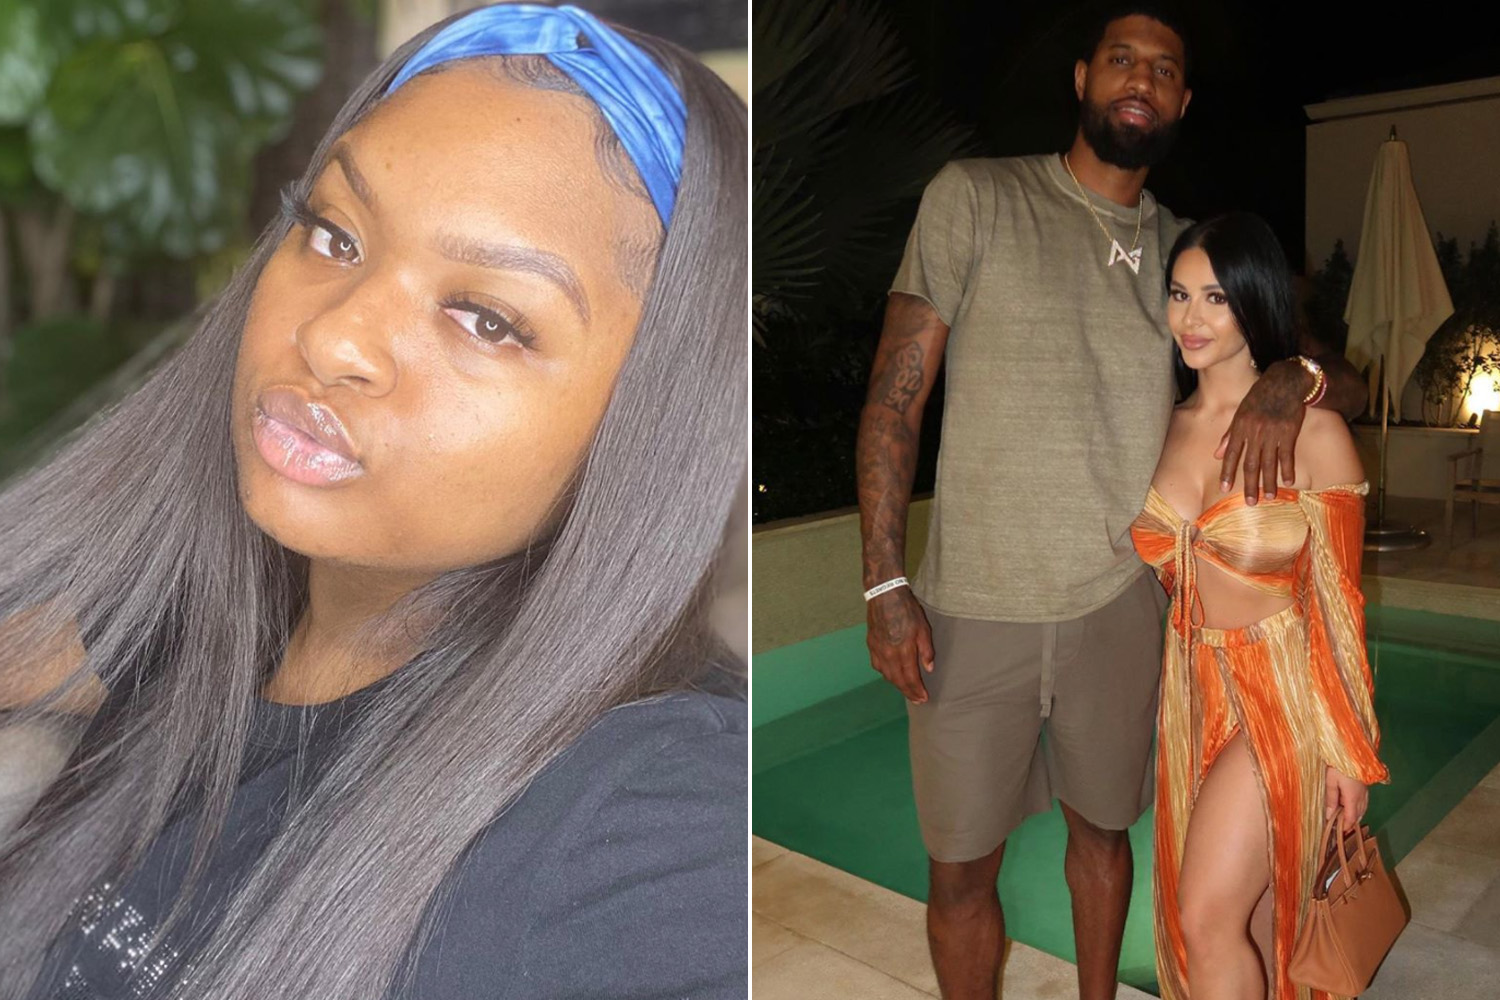 Damian Lillard S Sister Paul George S Girlfriend Engaged In Instagram Feud